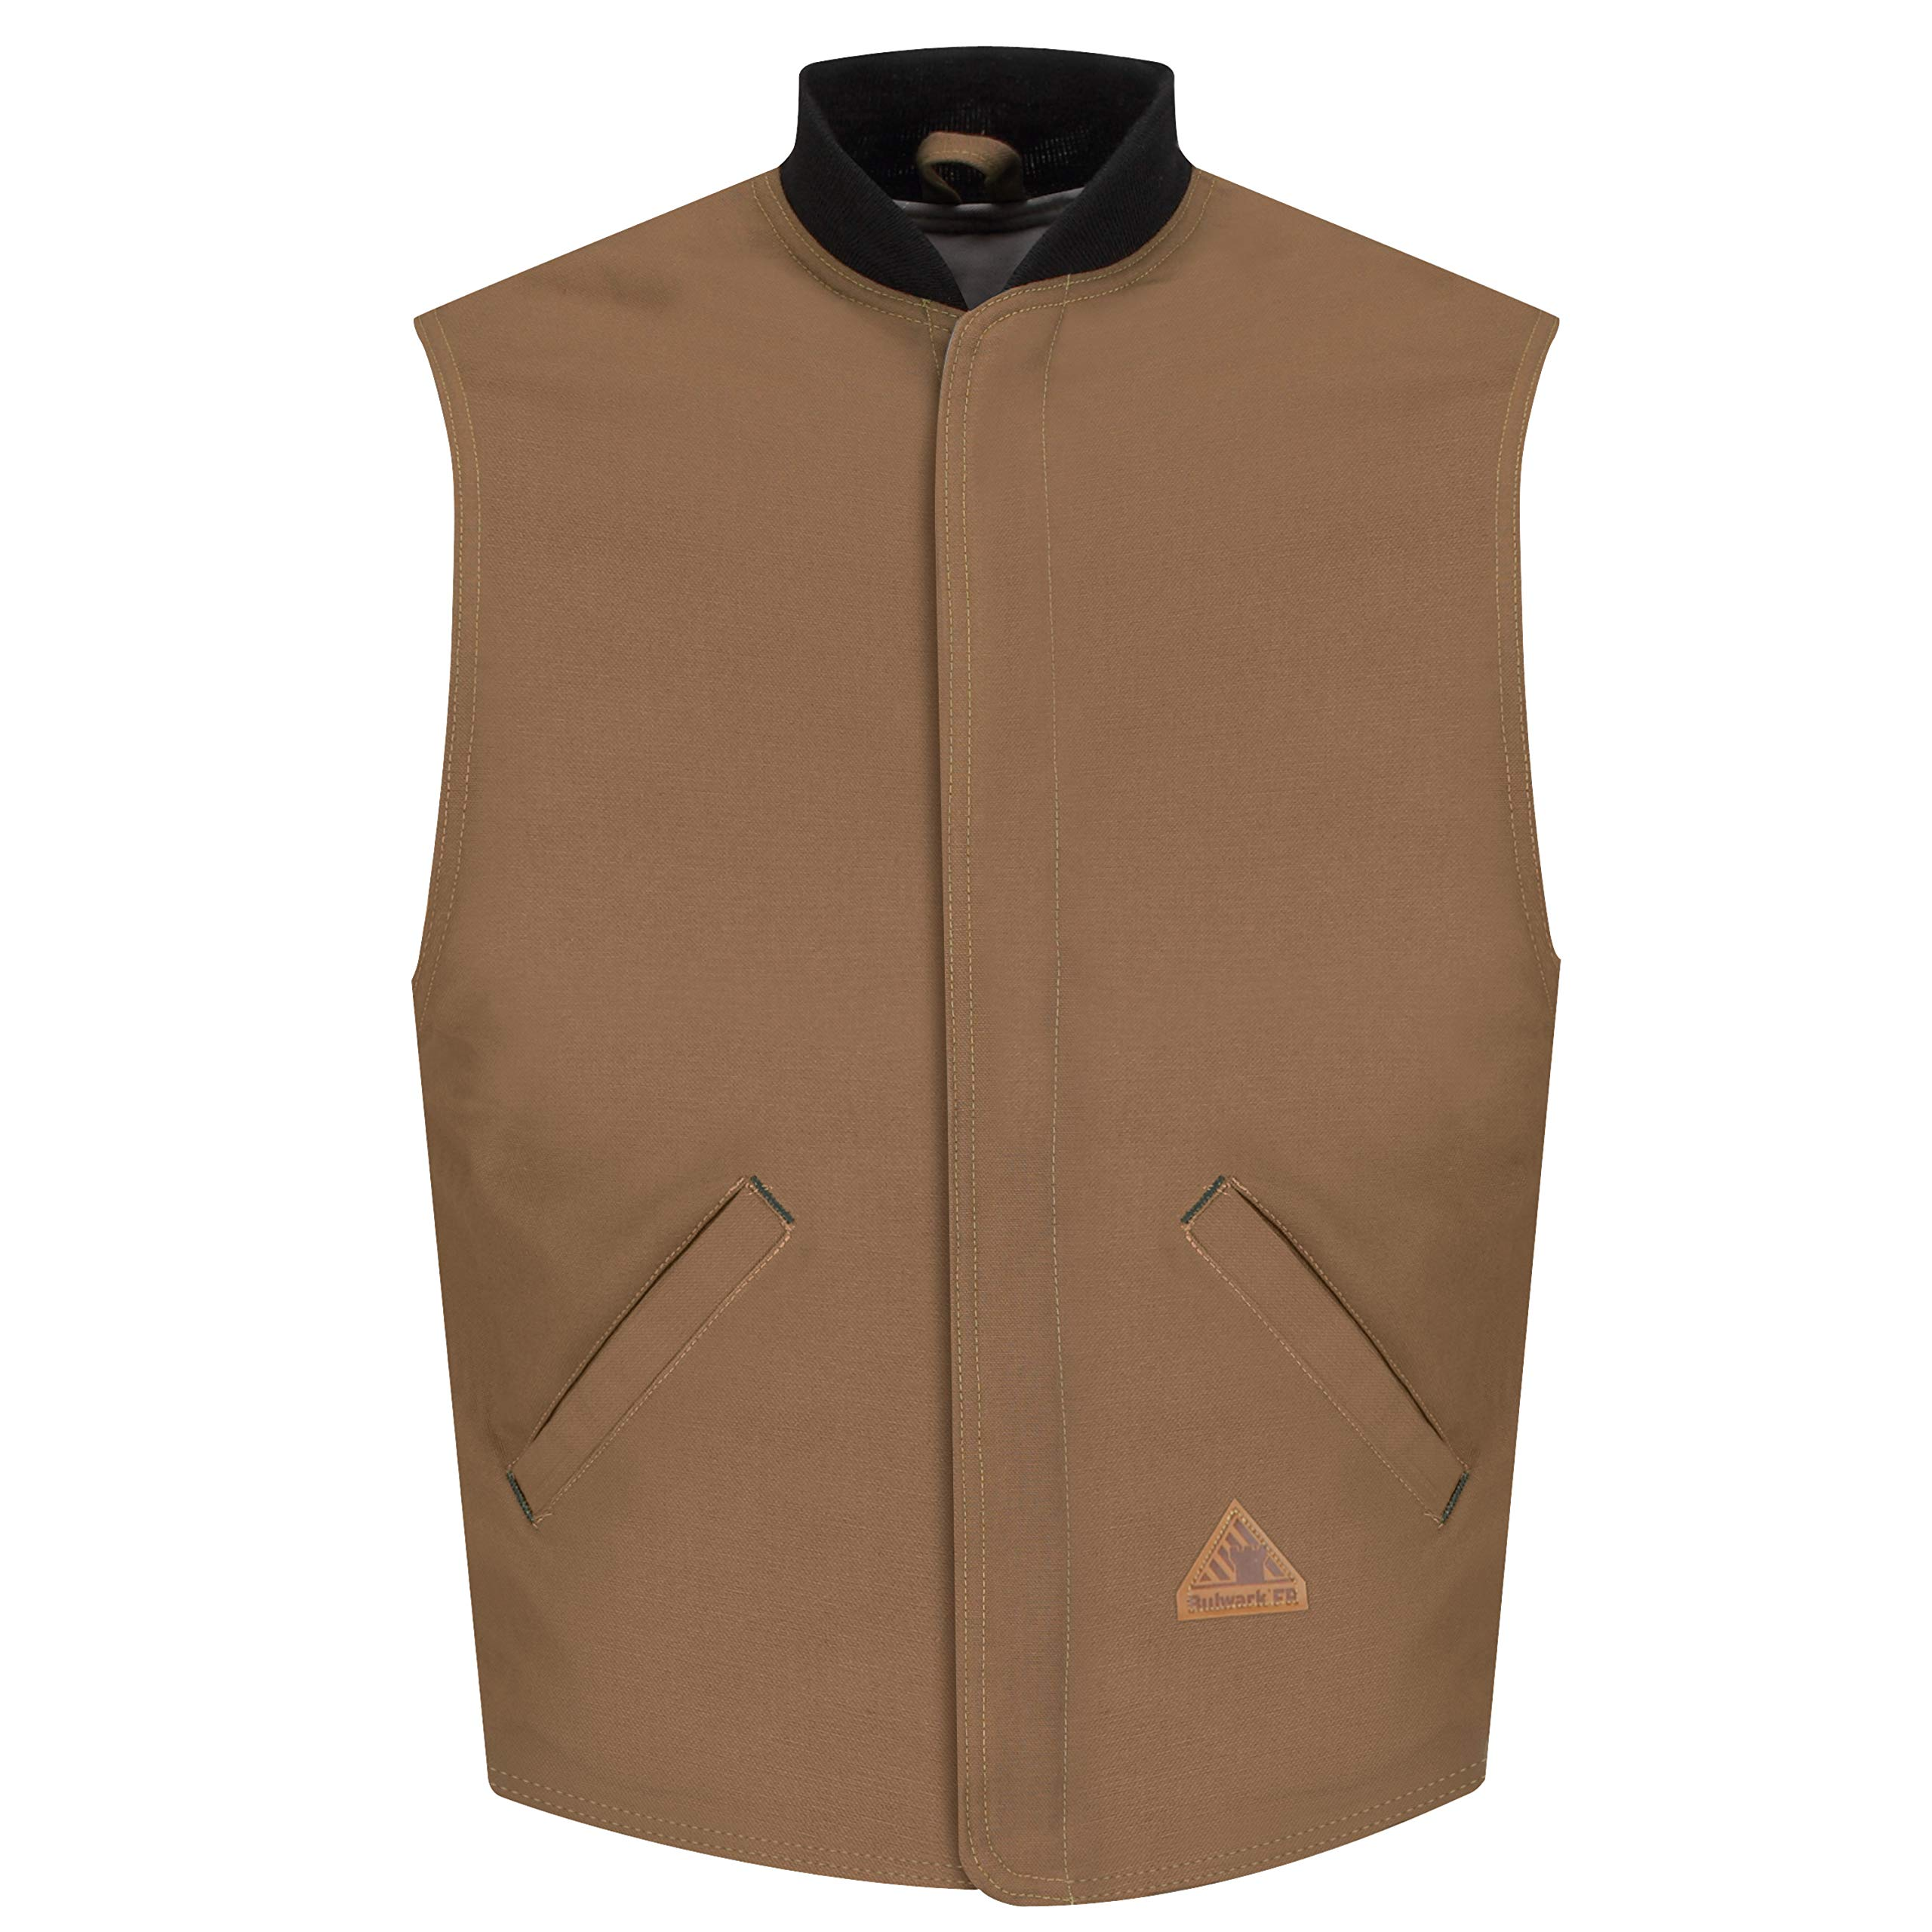 Bulwark Men's Flame Resistant 11 oz. Excel ComforTouch Duck Vest Liner with Rib-Knit Collar